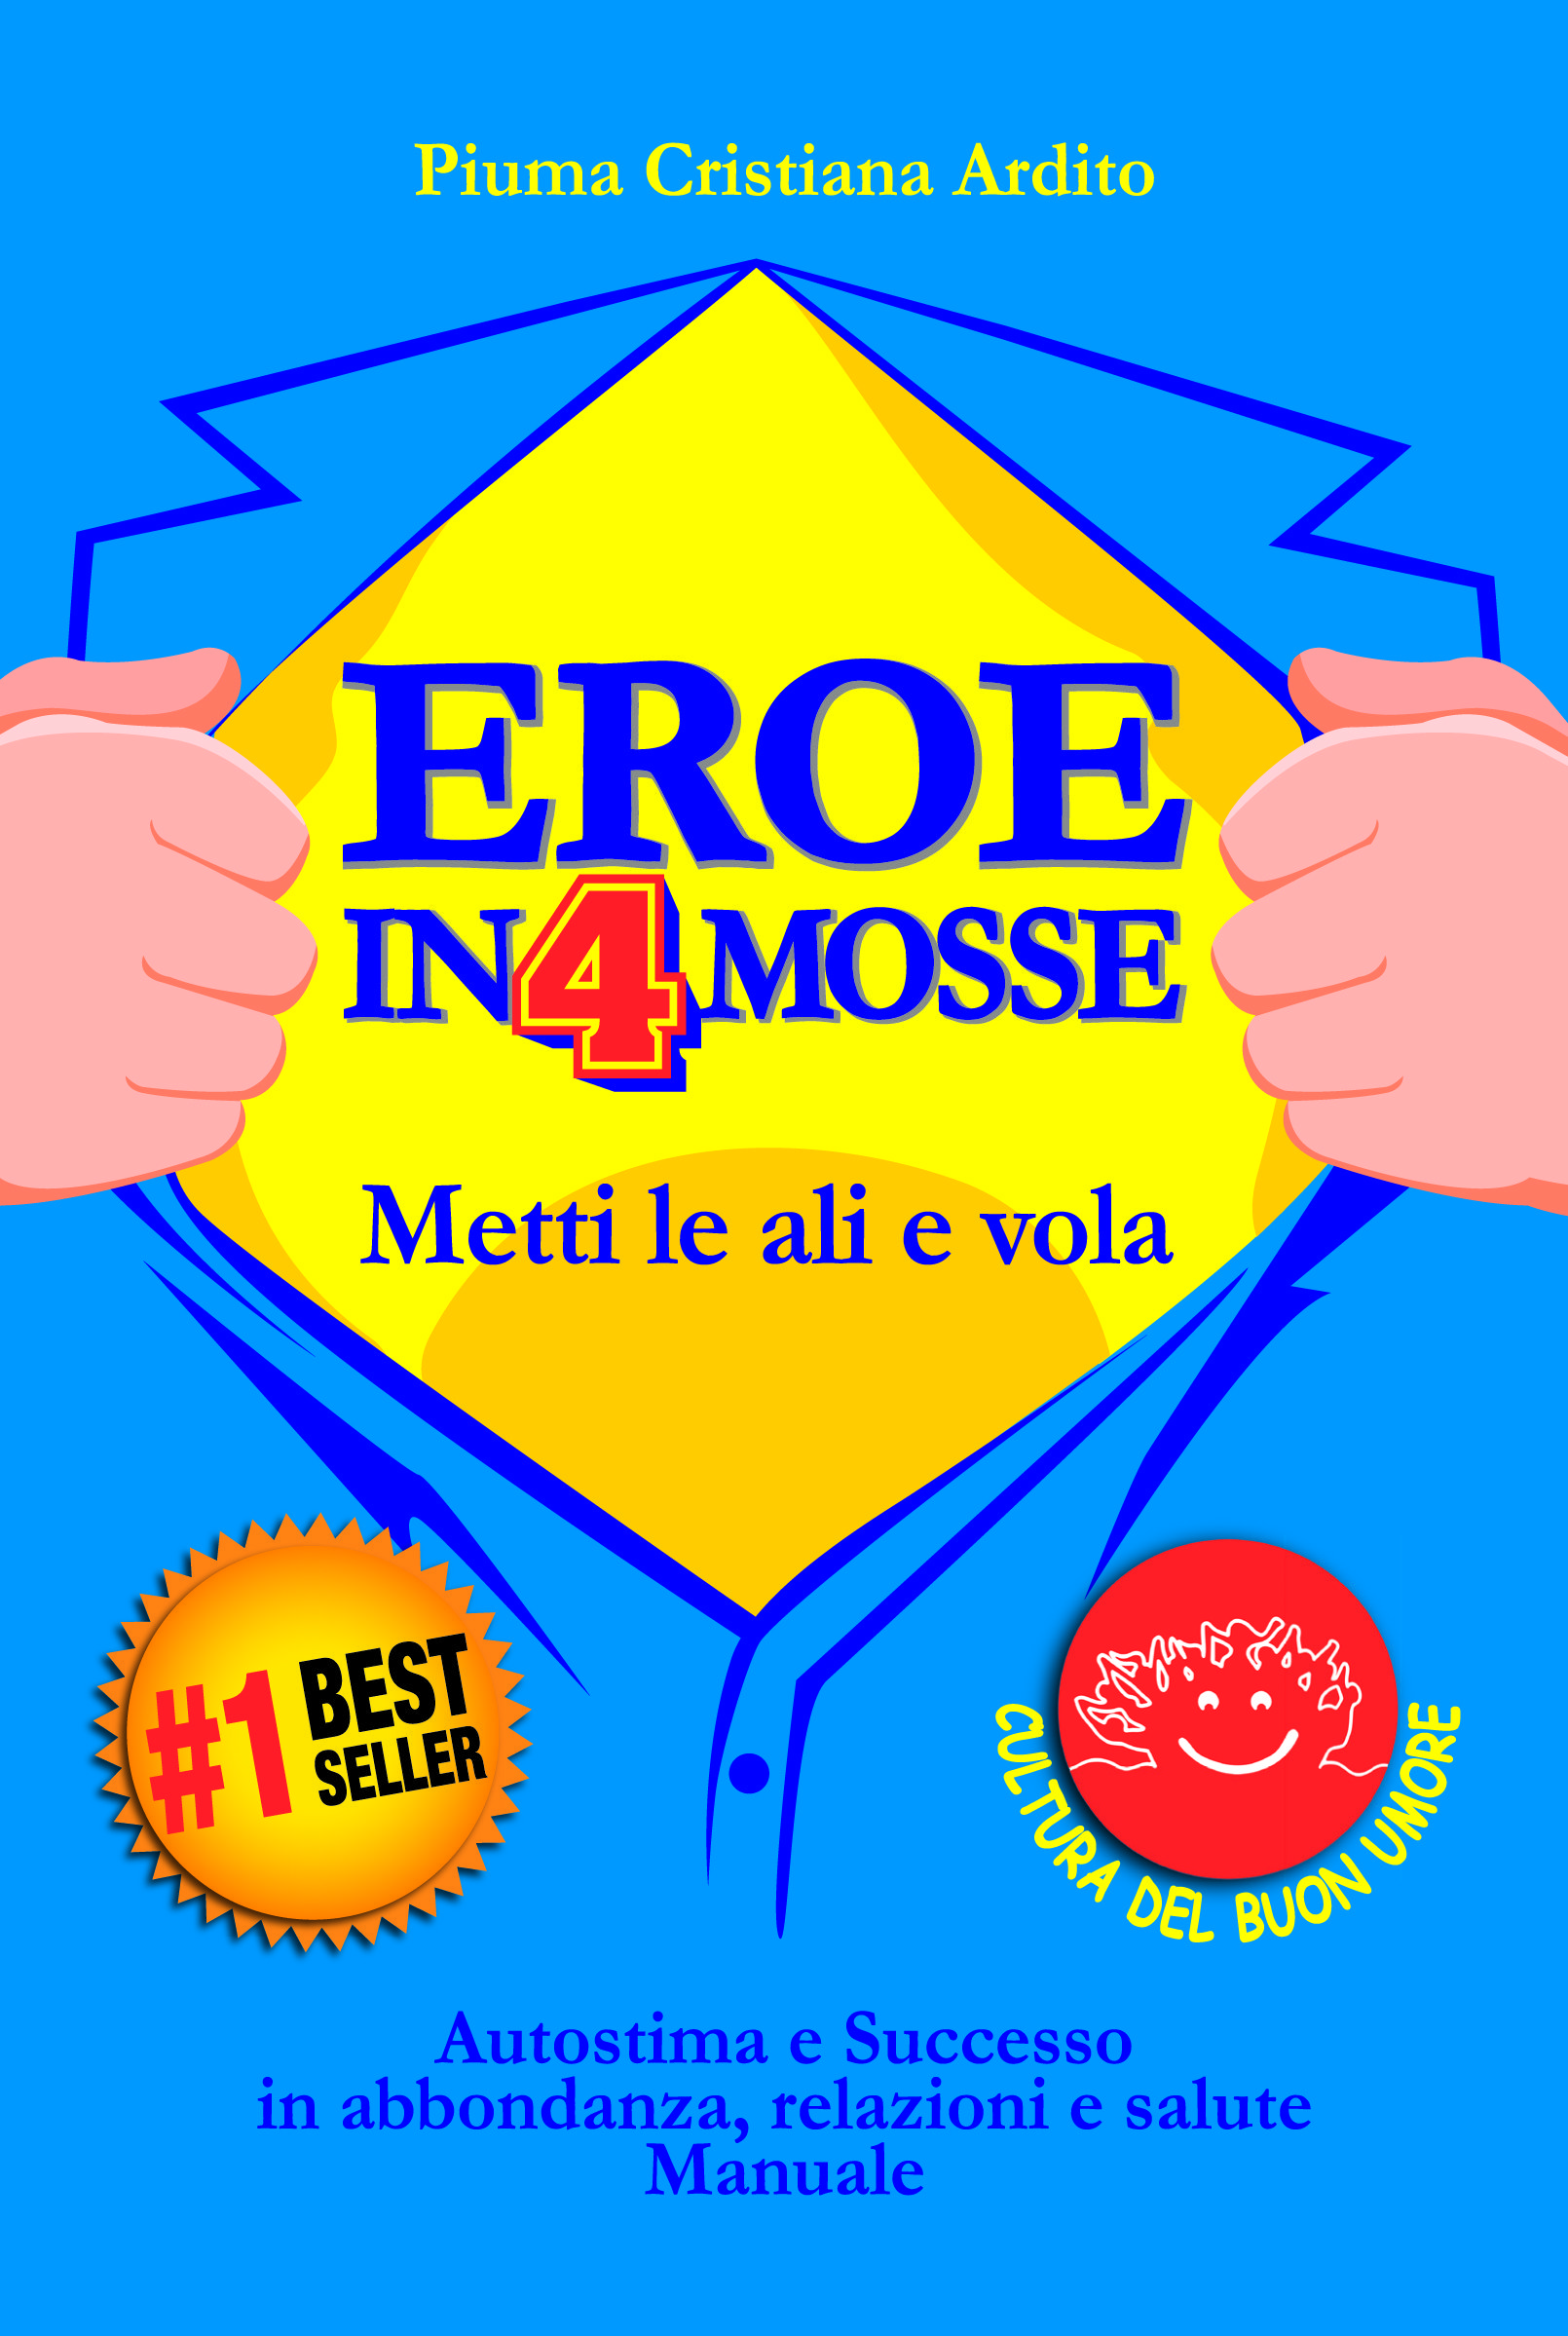 EROE in 4 MOSSE Best Seller